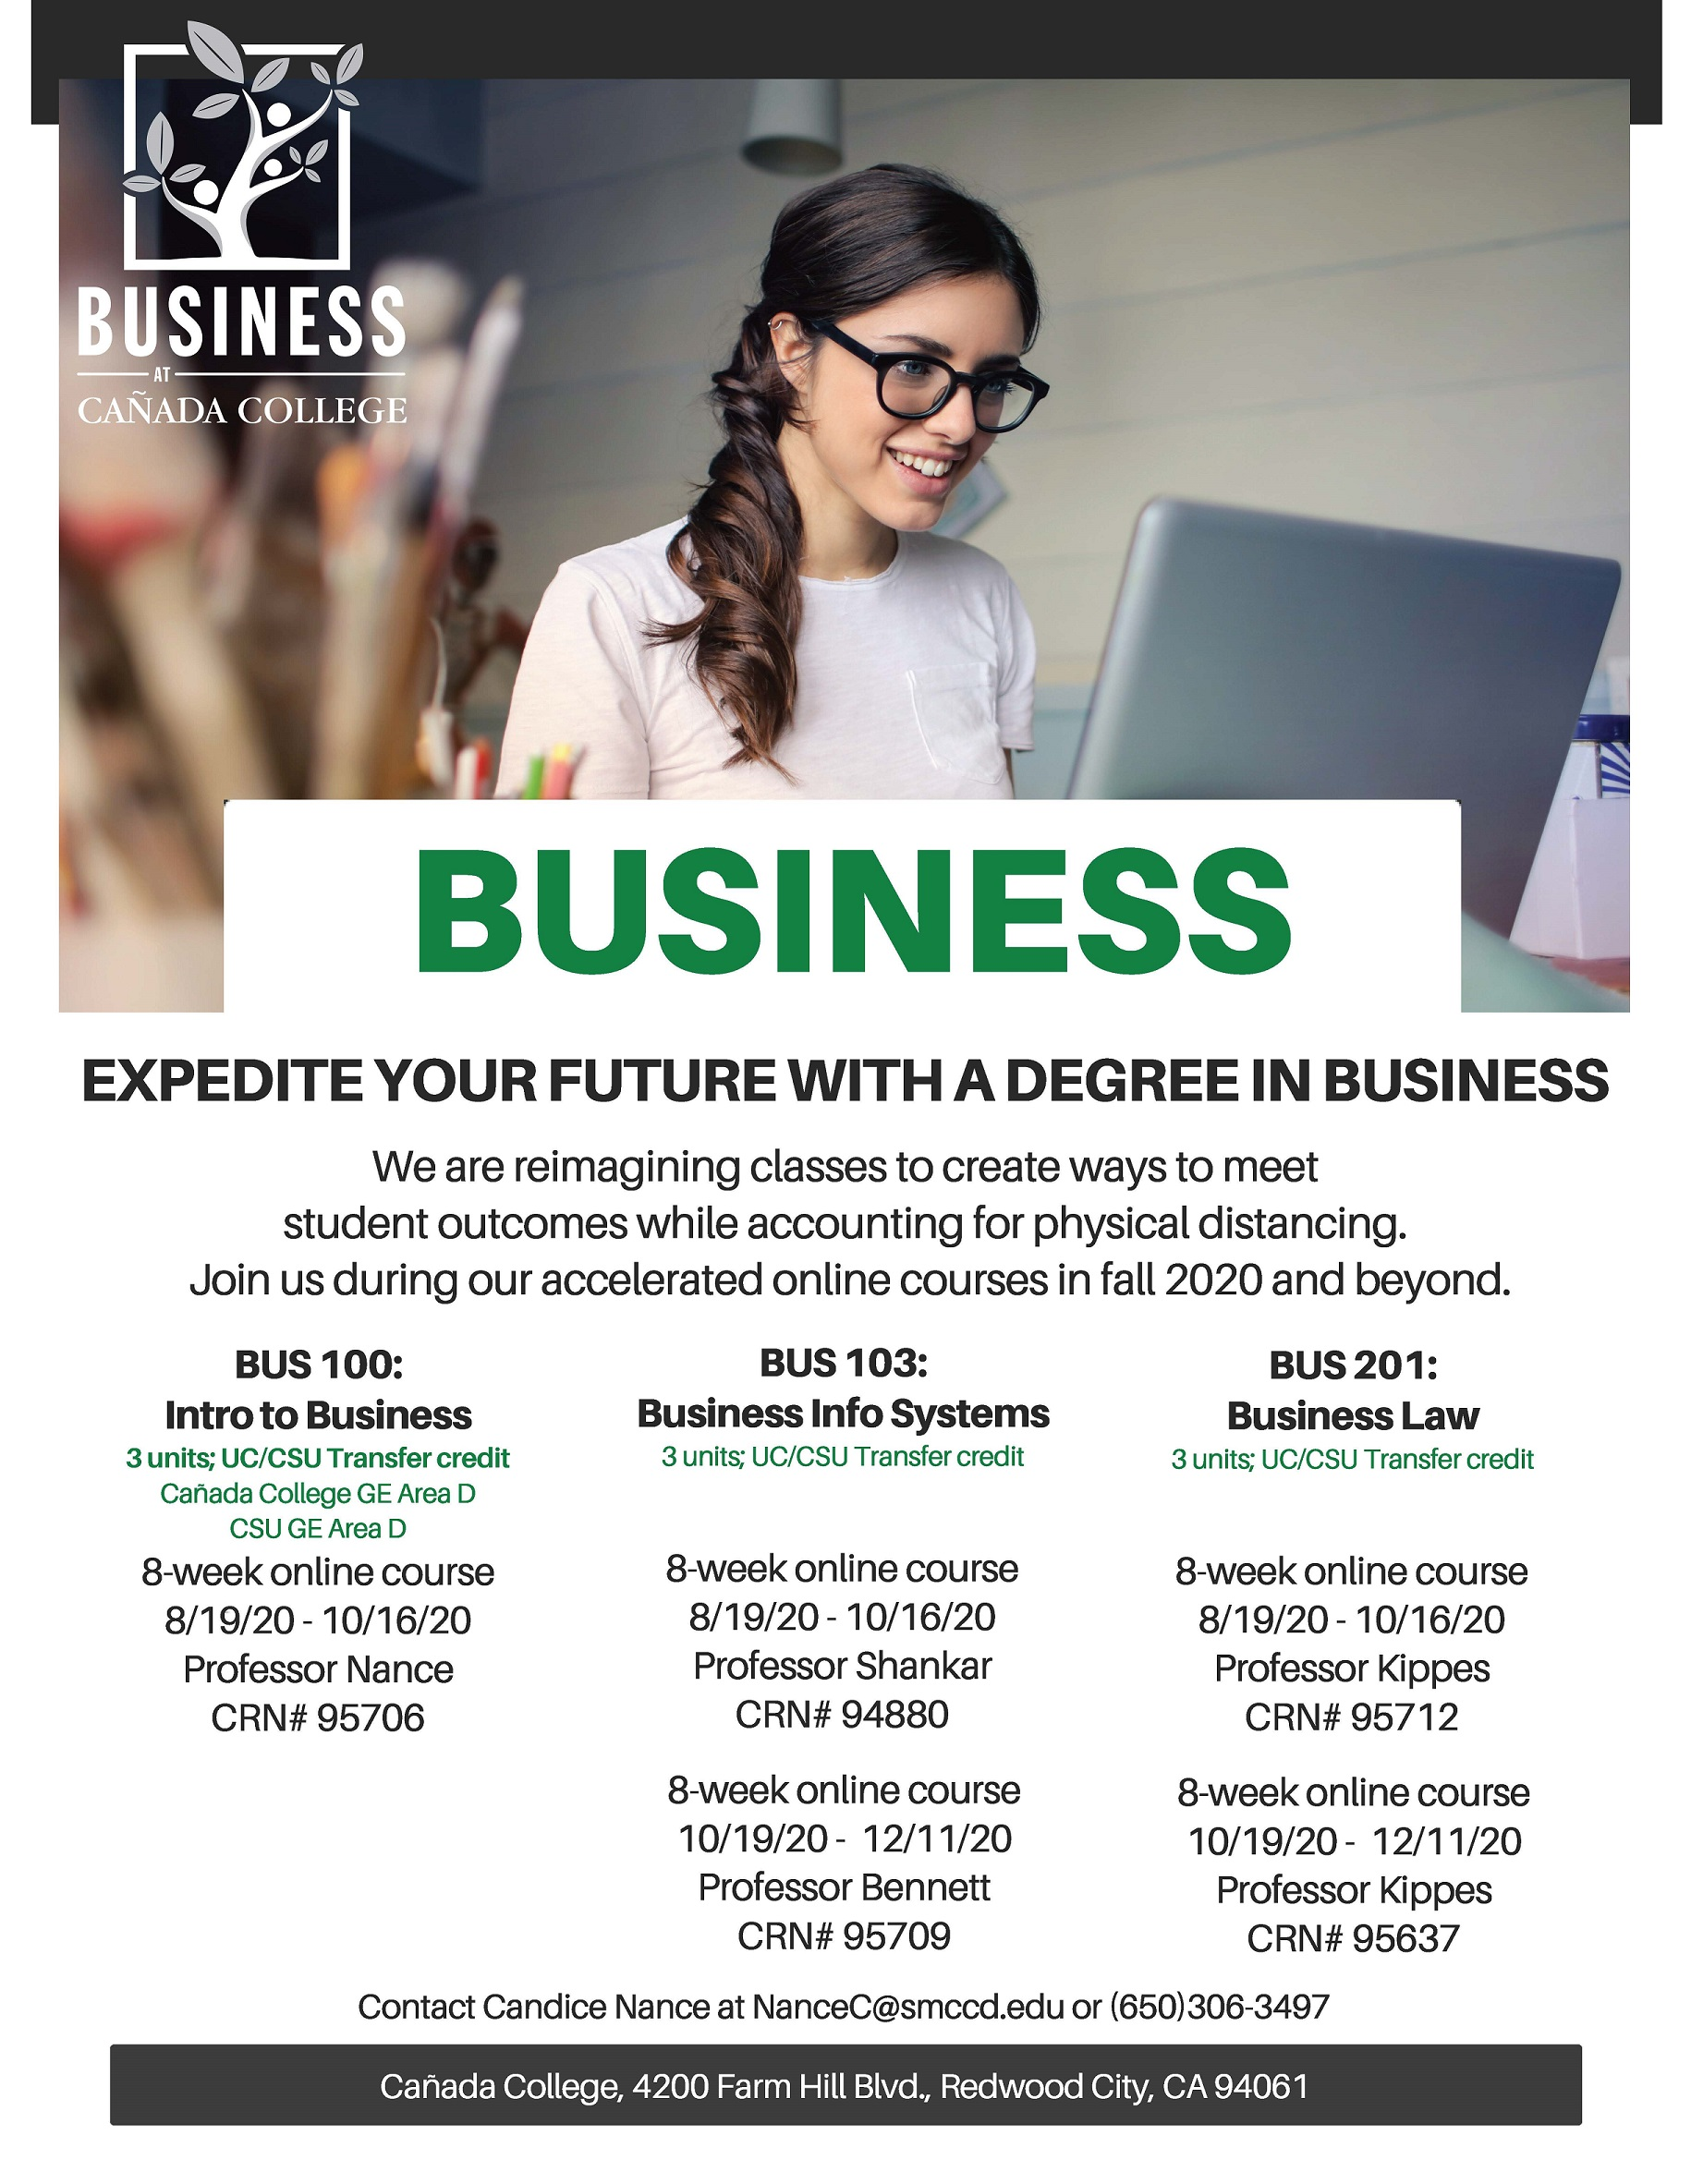 Flyer for online accelerated business courses in the fall of 2020